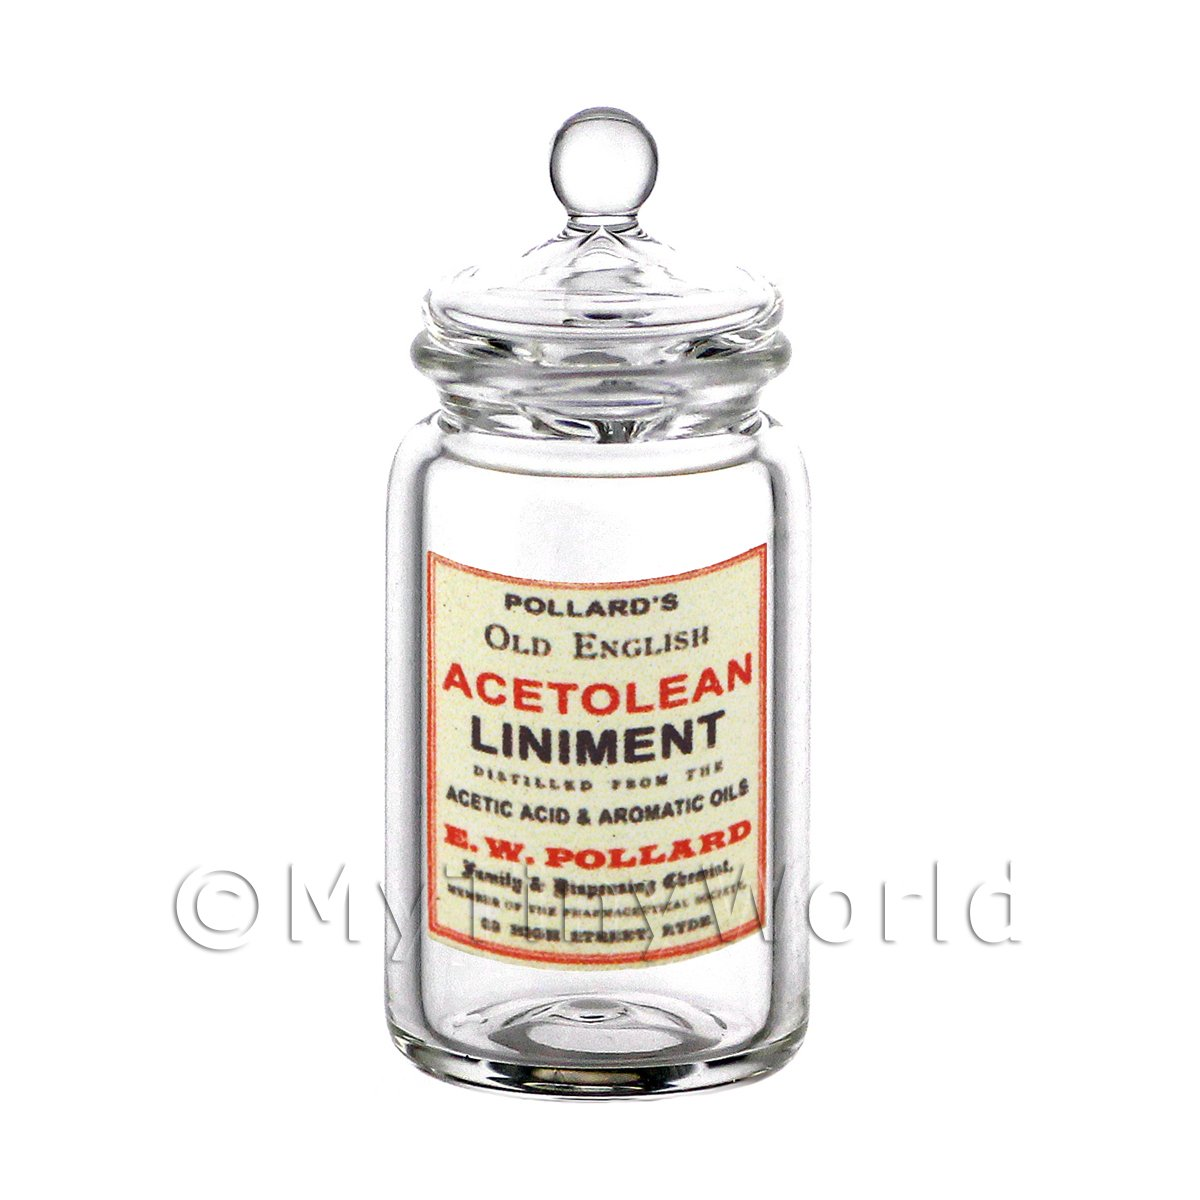 Dolls House Miniature Acetolean Liniment Glass Apothecary Storage Jar